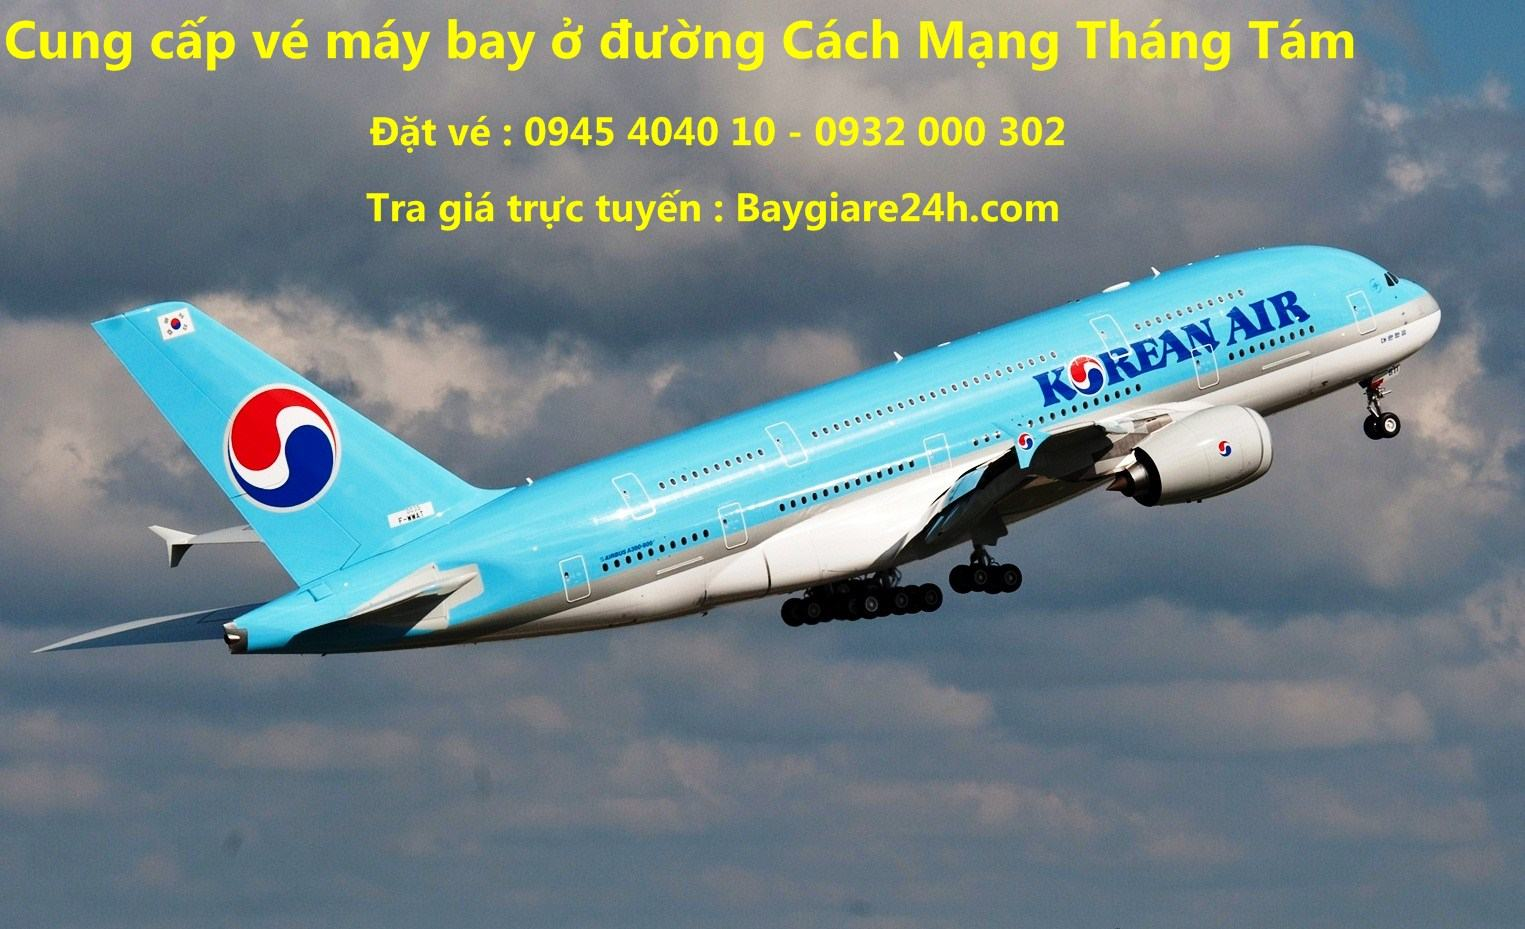 ve-may-bay-korean-air